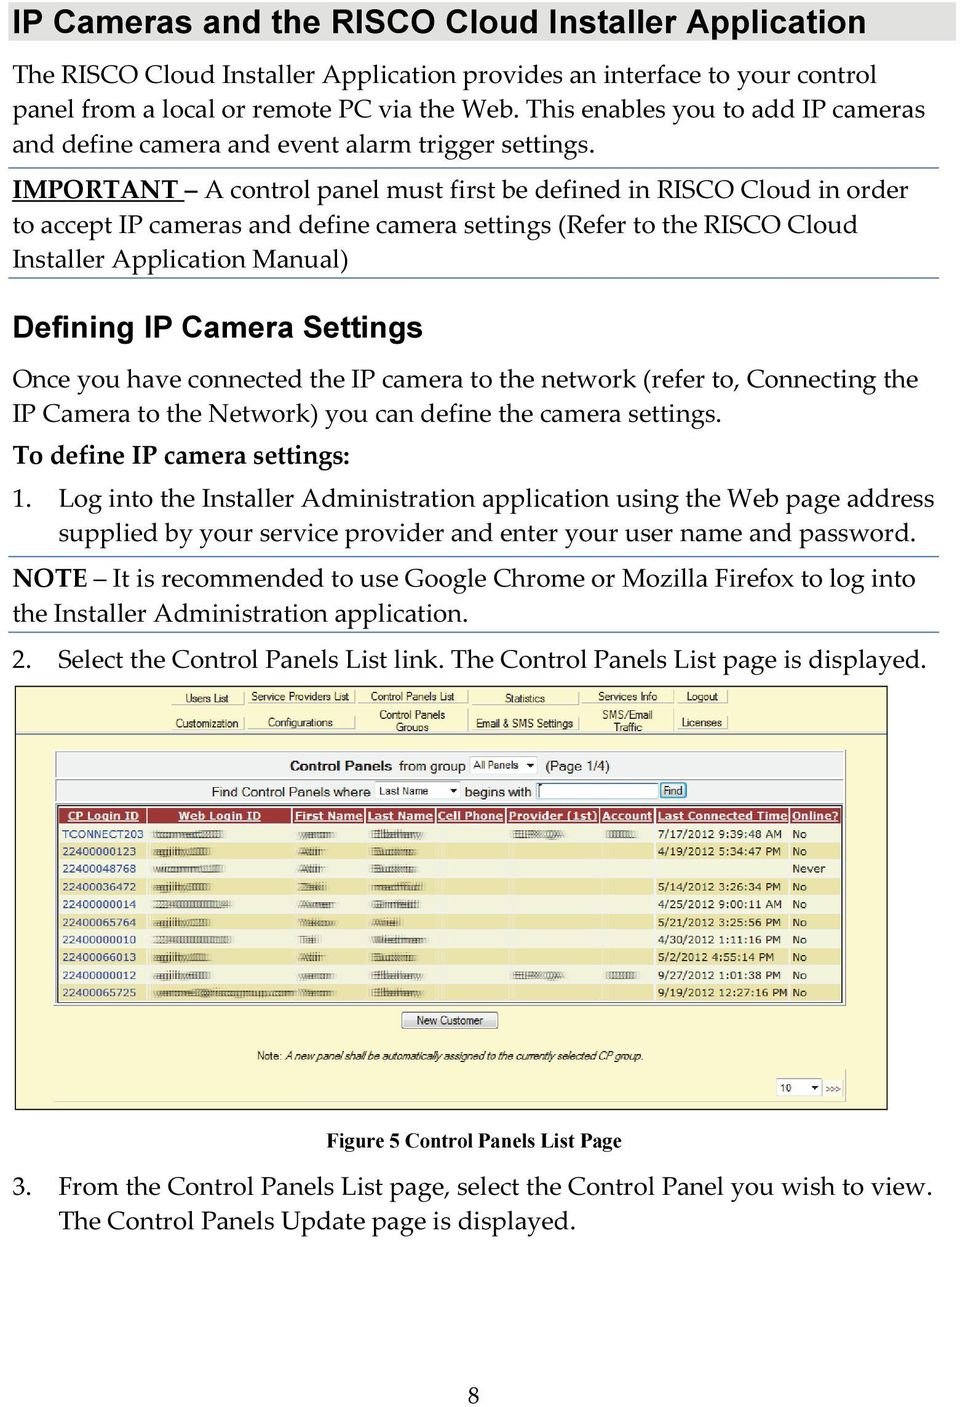 IMPORTANT A control panel must first be defined in RISCO Cloud in order to accept IP cameras and define camera settings (Refer to the RISCO Cloud Installer Application Manual) Defining IP Camera